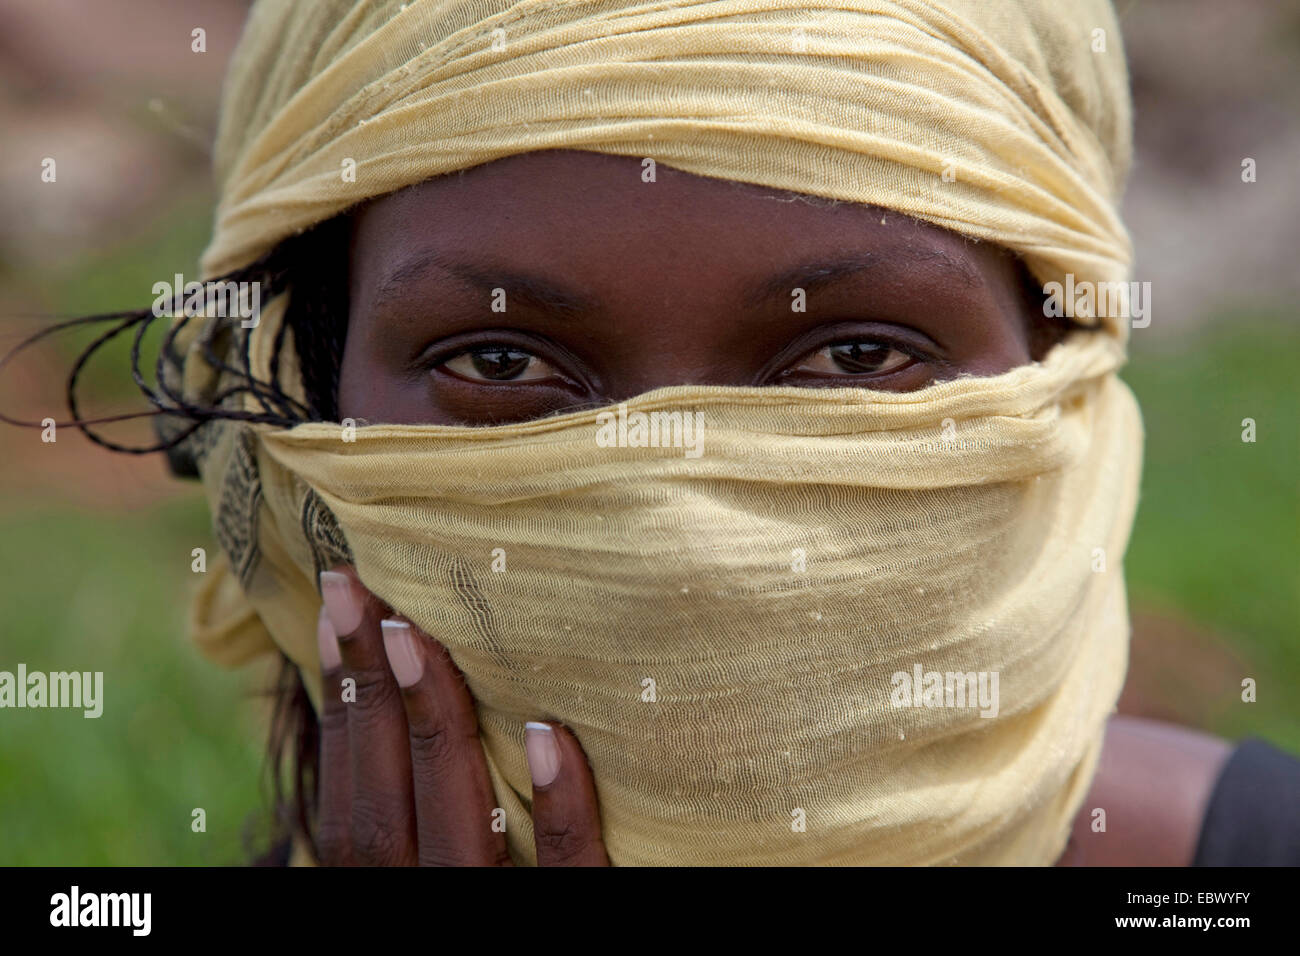 Portrait of a young woman with a headscarf, Uganda, Jinja Stock Photo